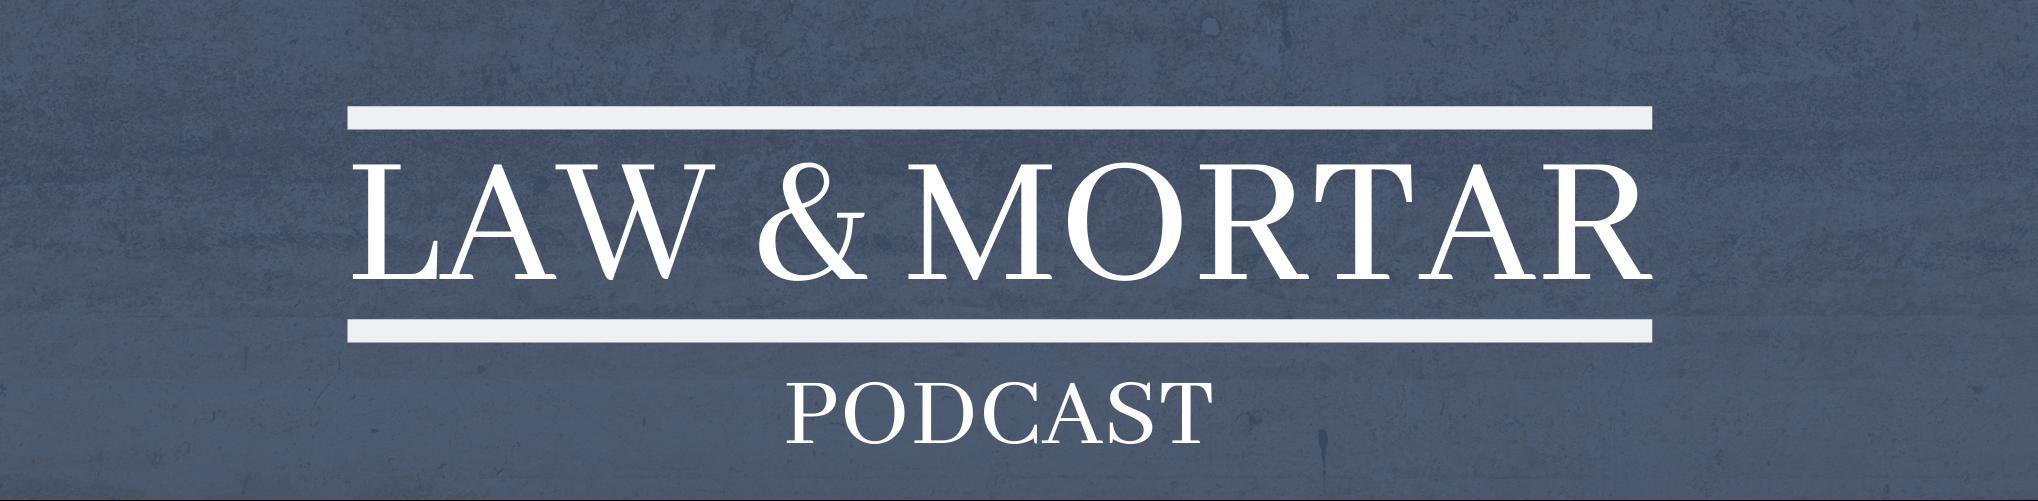 Law & Mortar Episode 46 featured image